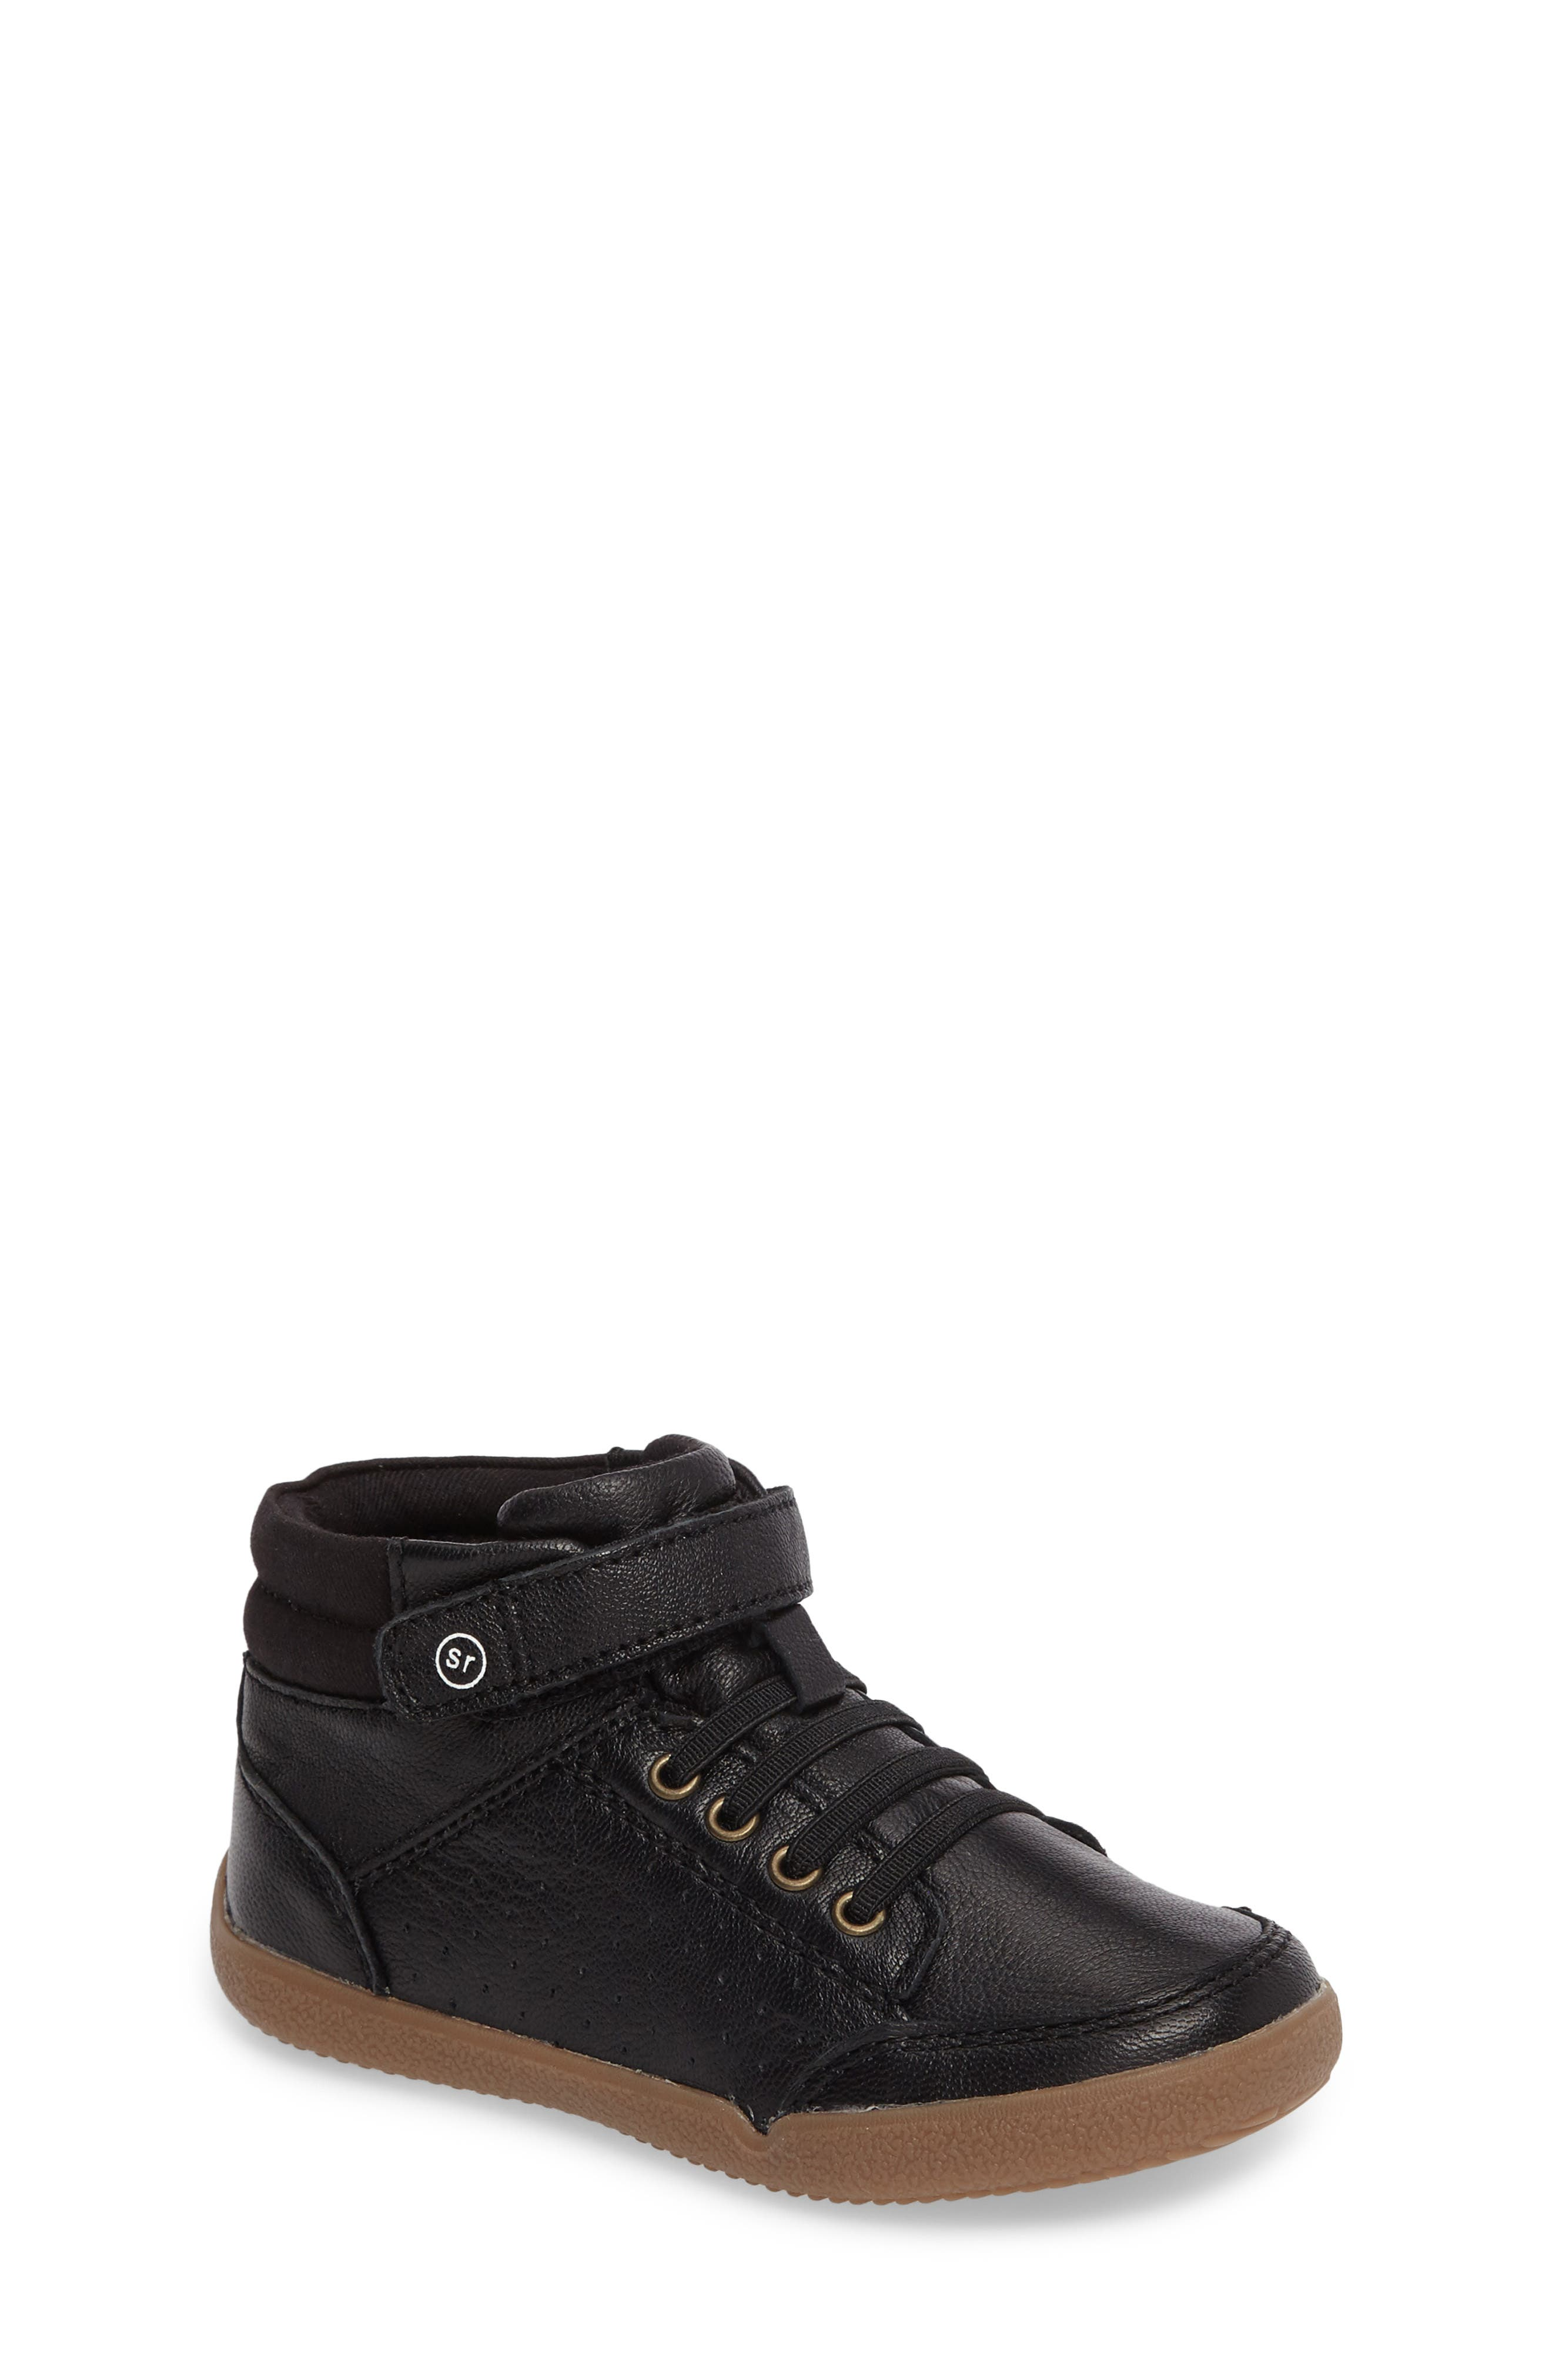 Stone High Top Sneaker,                         Main,                         color, 001